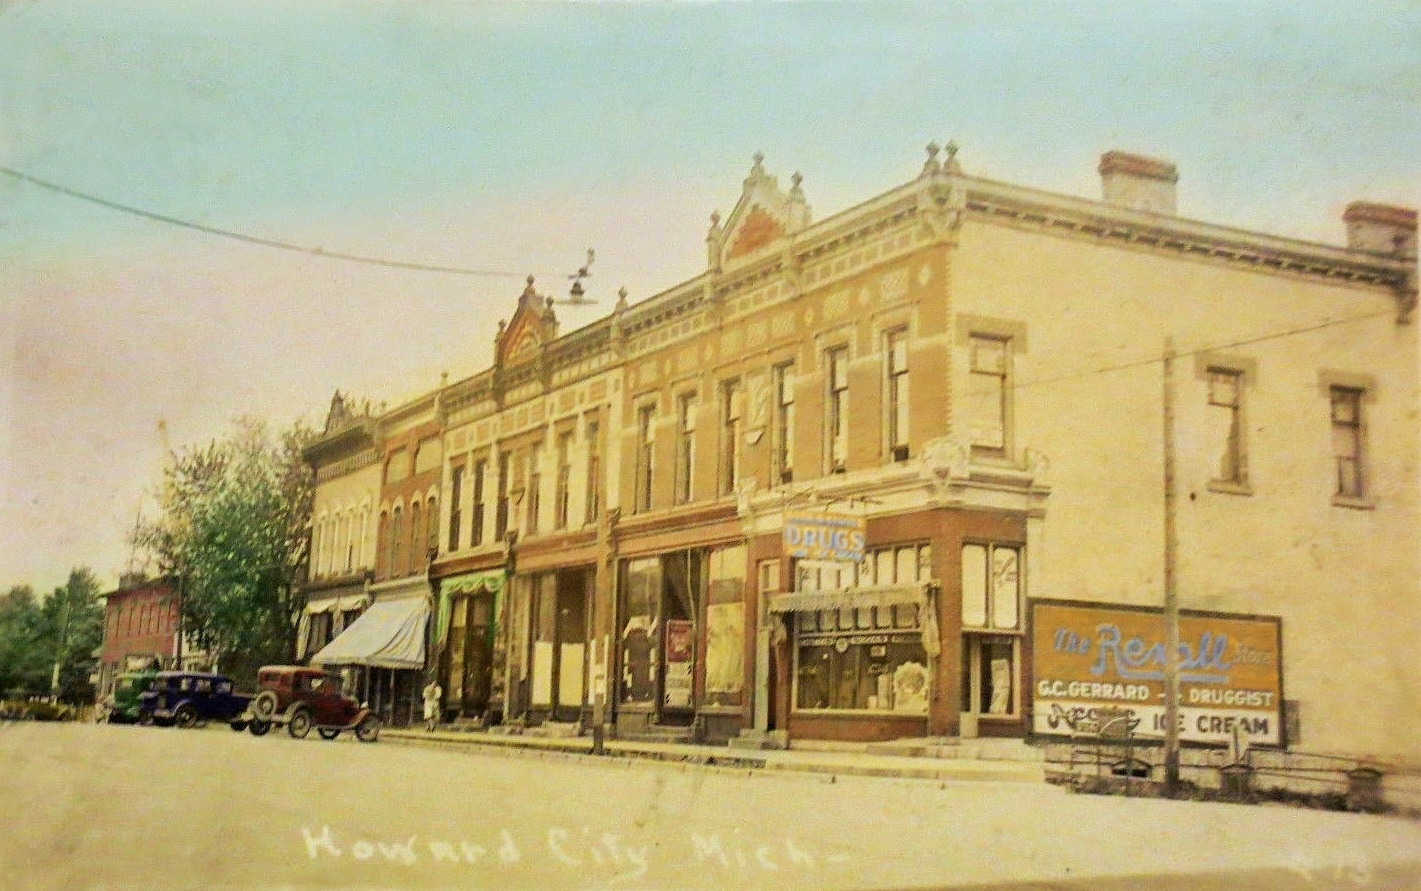 HOWARD CITY MICHIGAN DOWNTOWN MAIN STREET 1930